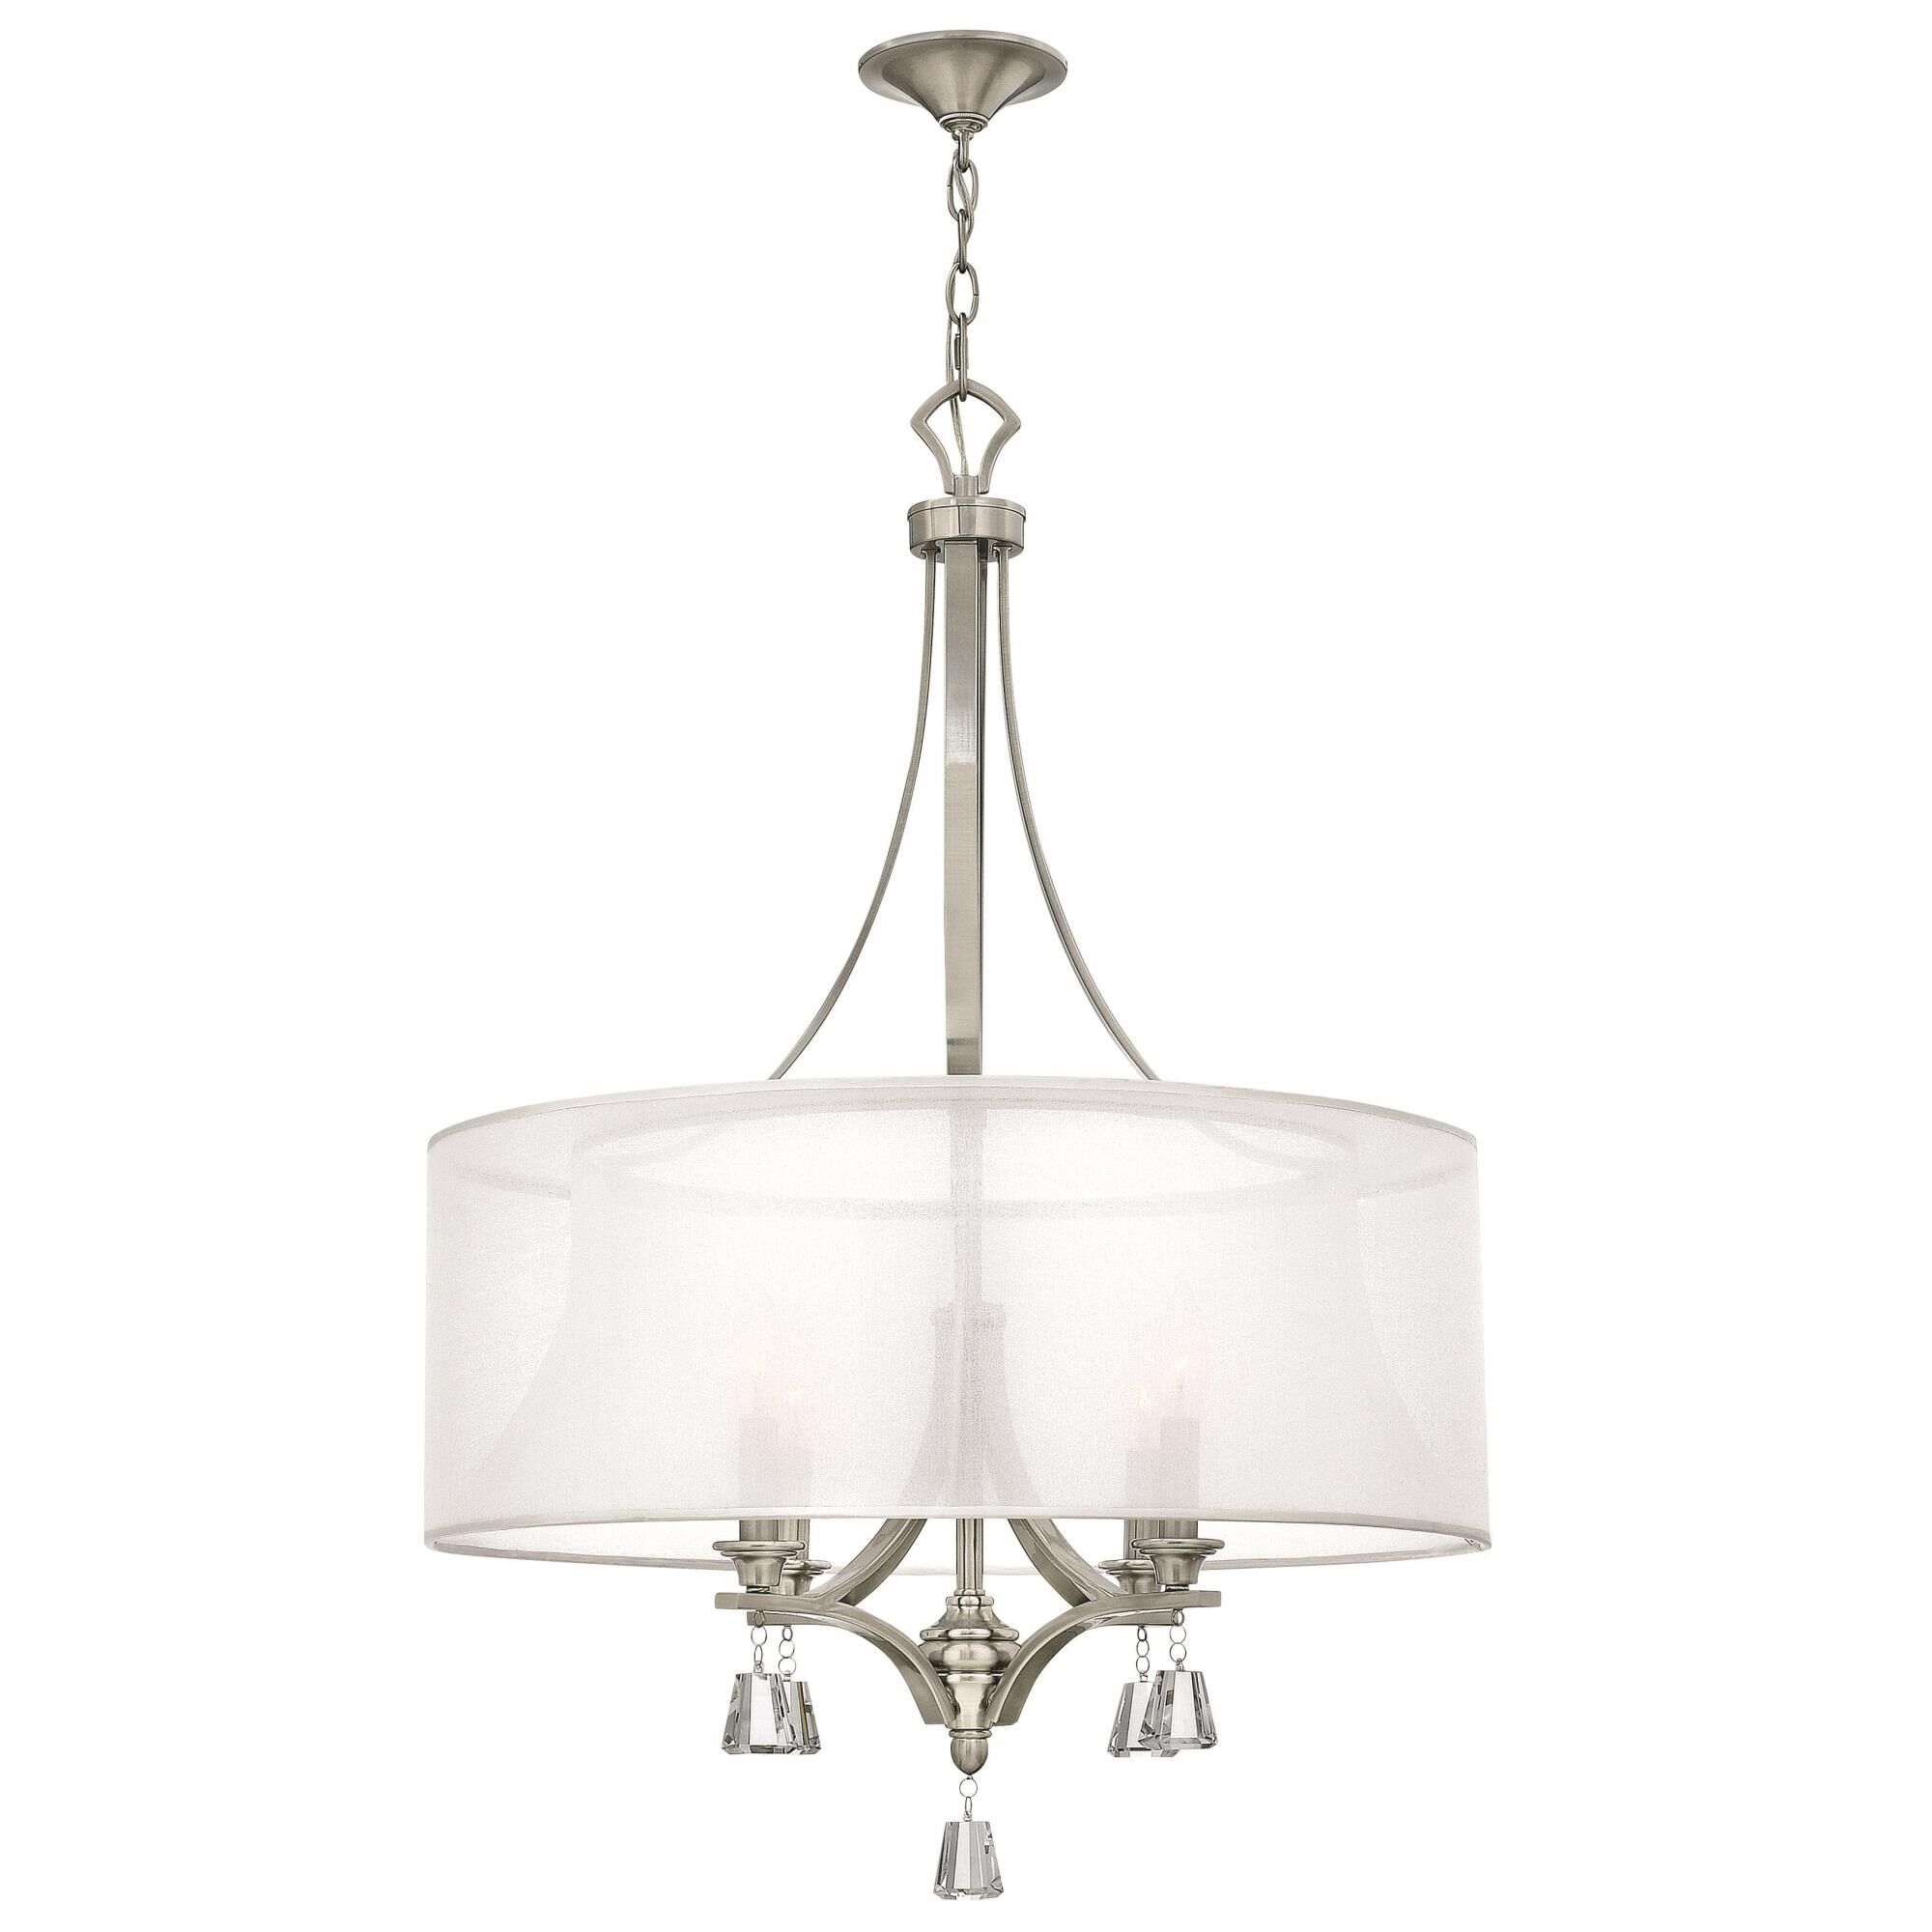 Avenue Lighting HF8200 Palisades Ave. Collection 18 Light Chandelier